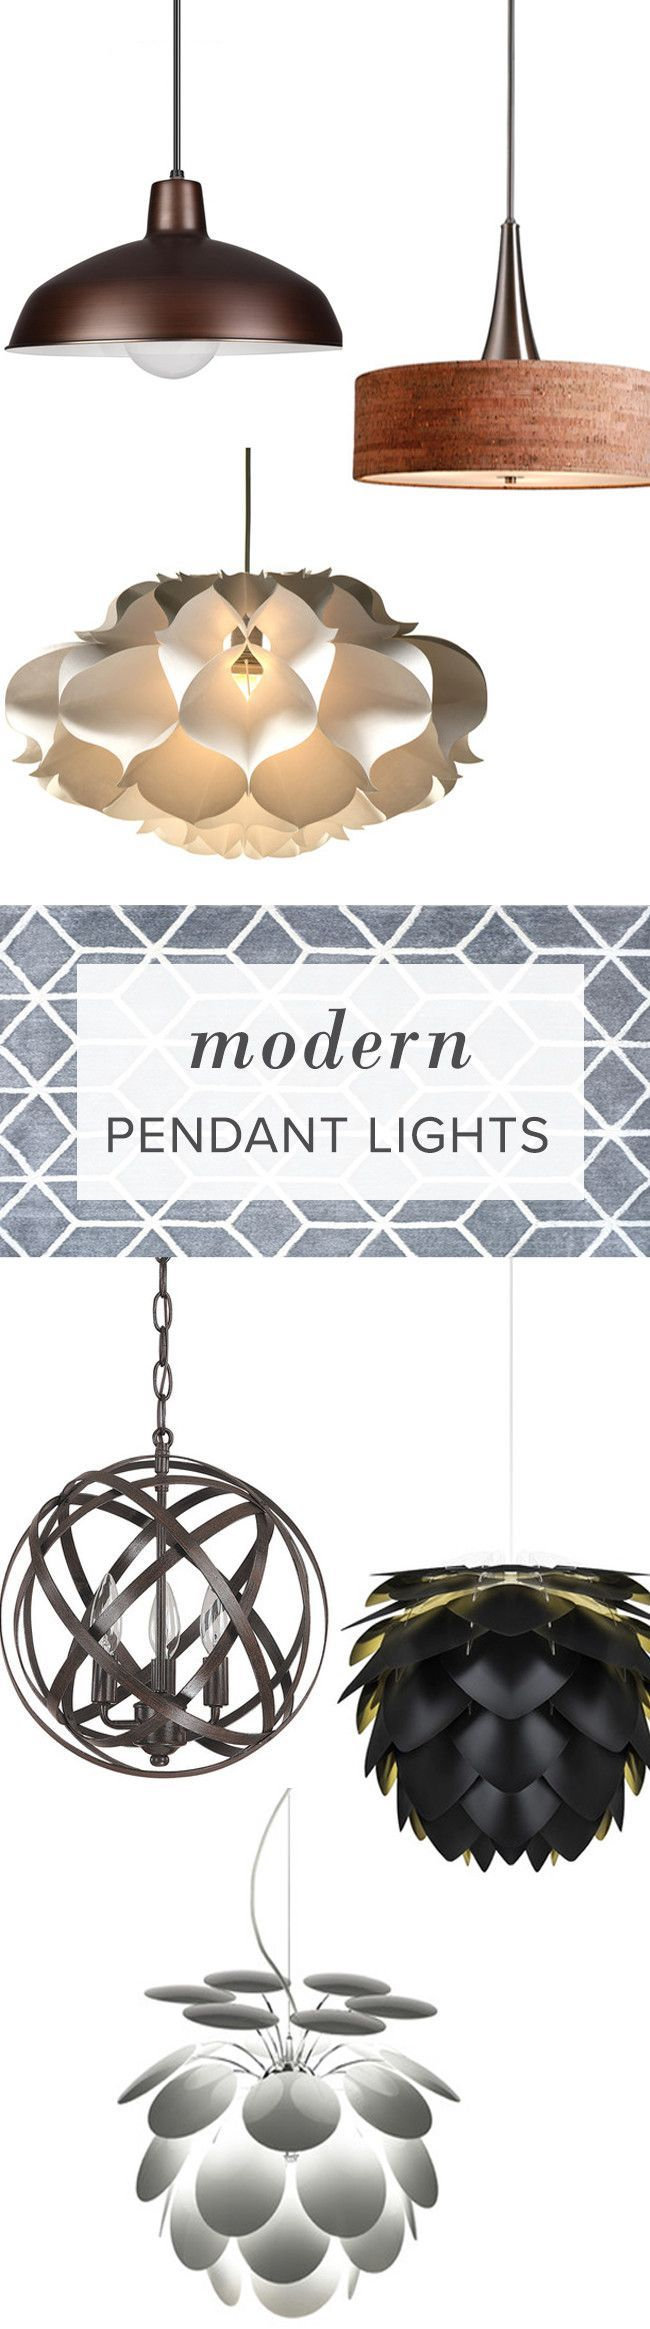 Make a statement with a beautiful, bold pendant. Whether it's for your living room, kitchen or bedroom, Sign up on AllModern for affordable modern pendants to achieve that finishing touch. FREE SHIPPING on orders over $49.